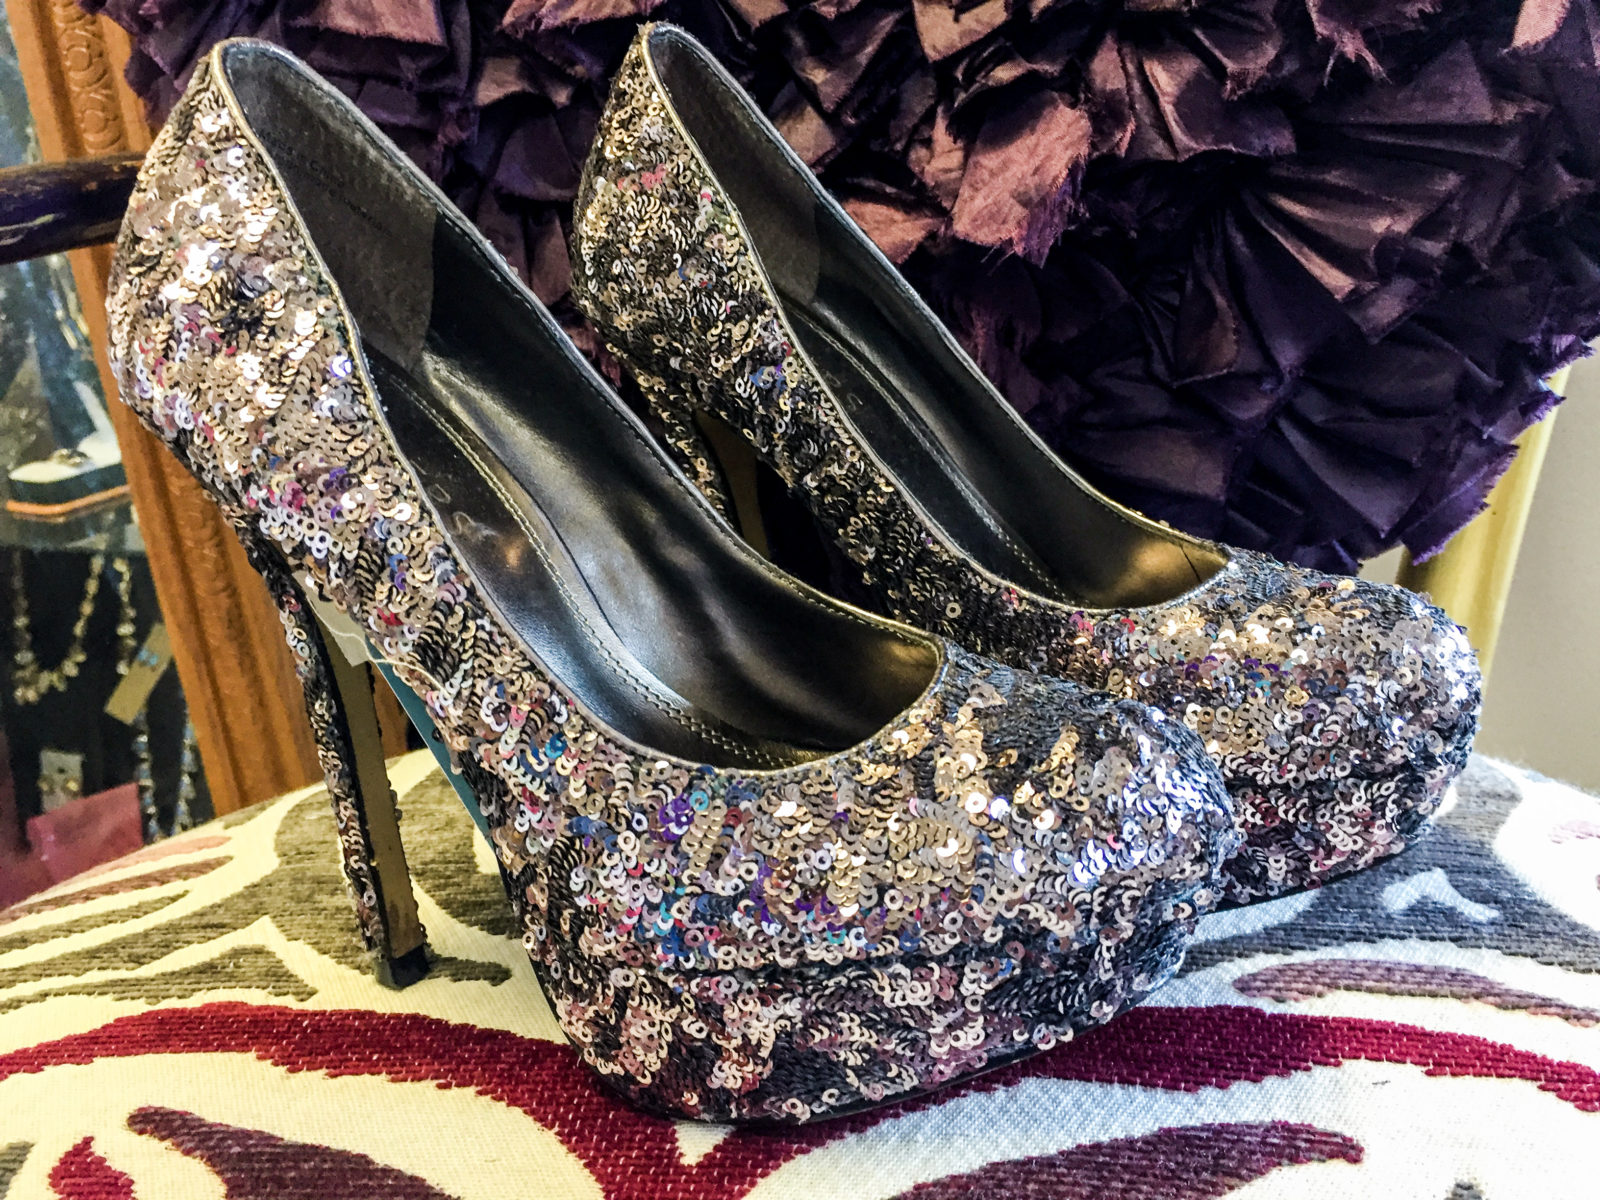 Platform Sequin Heels • Stunning sequin platform heels. These cuties have a slight tint of lavender in the sequins. The sequins catch the light and make them sparkle. They have 4.5 heels and are a size 7.5.